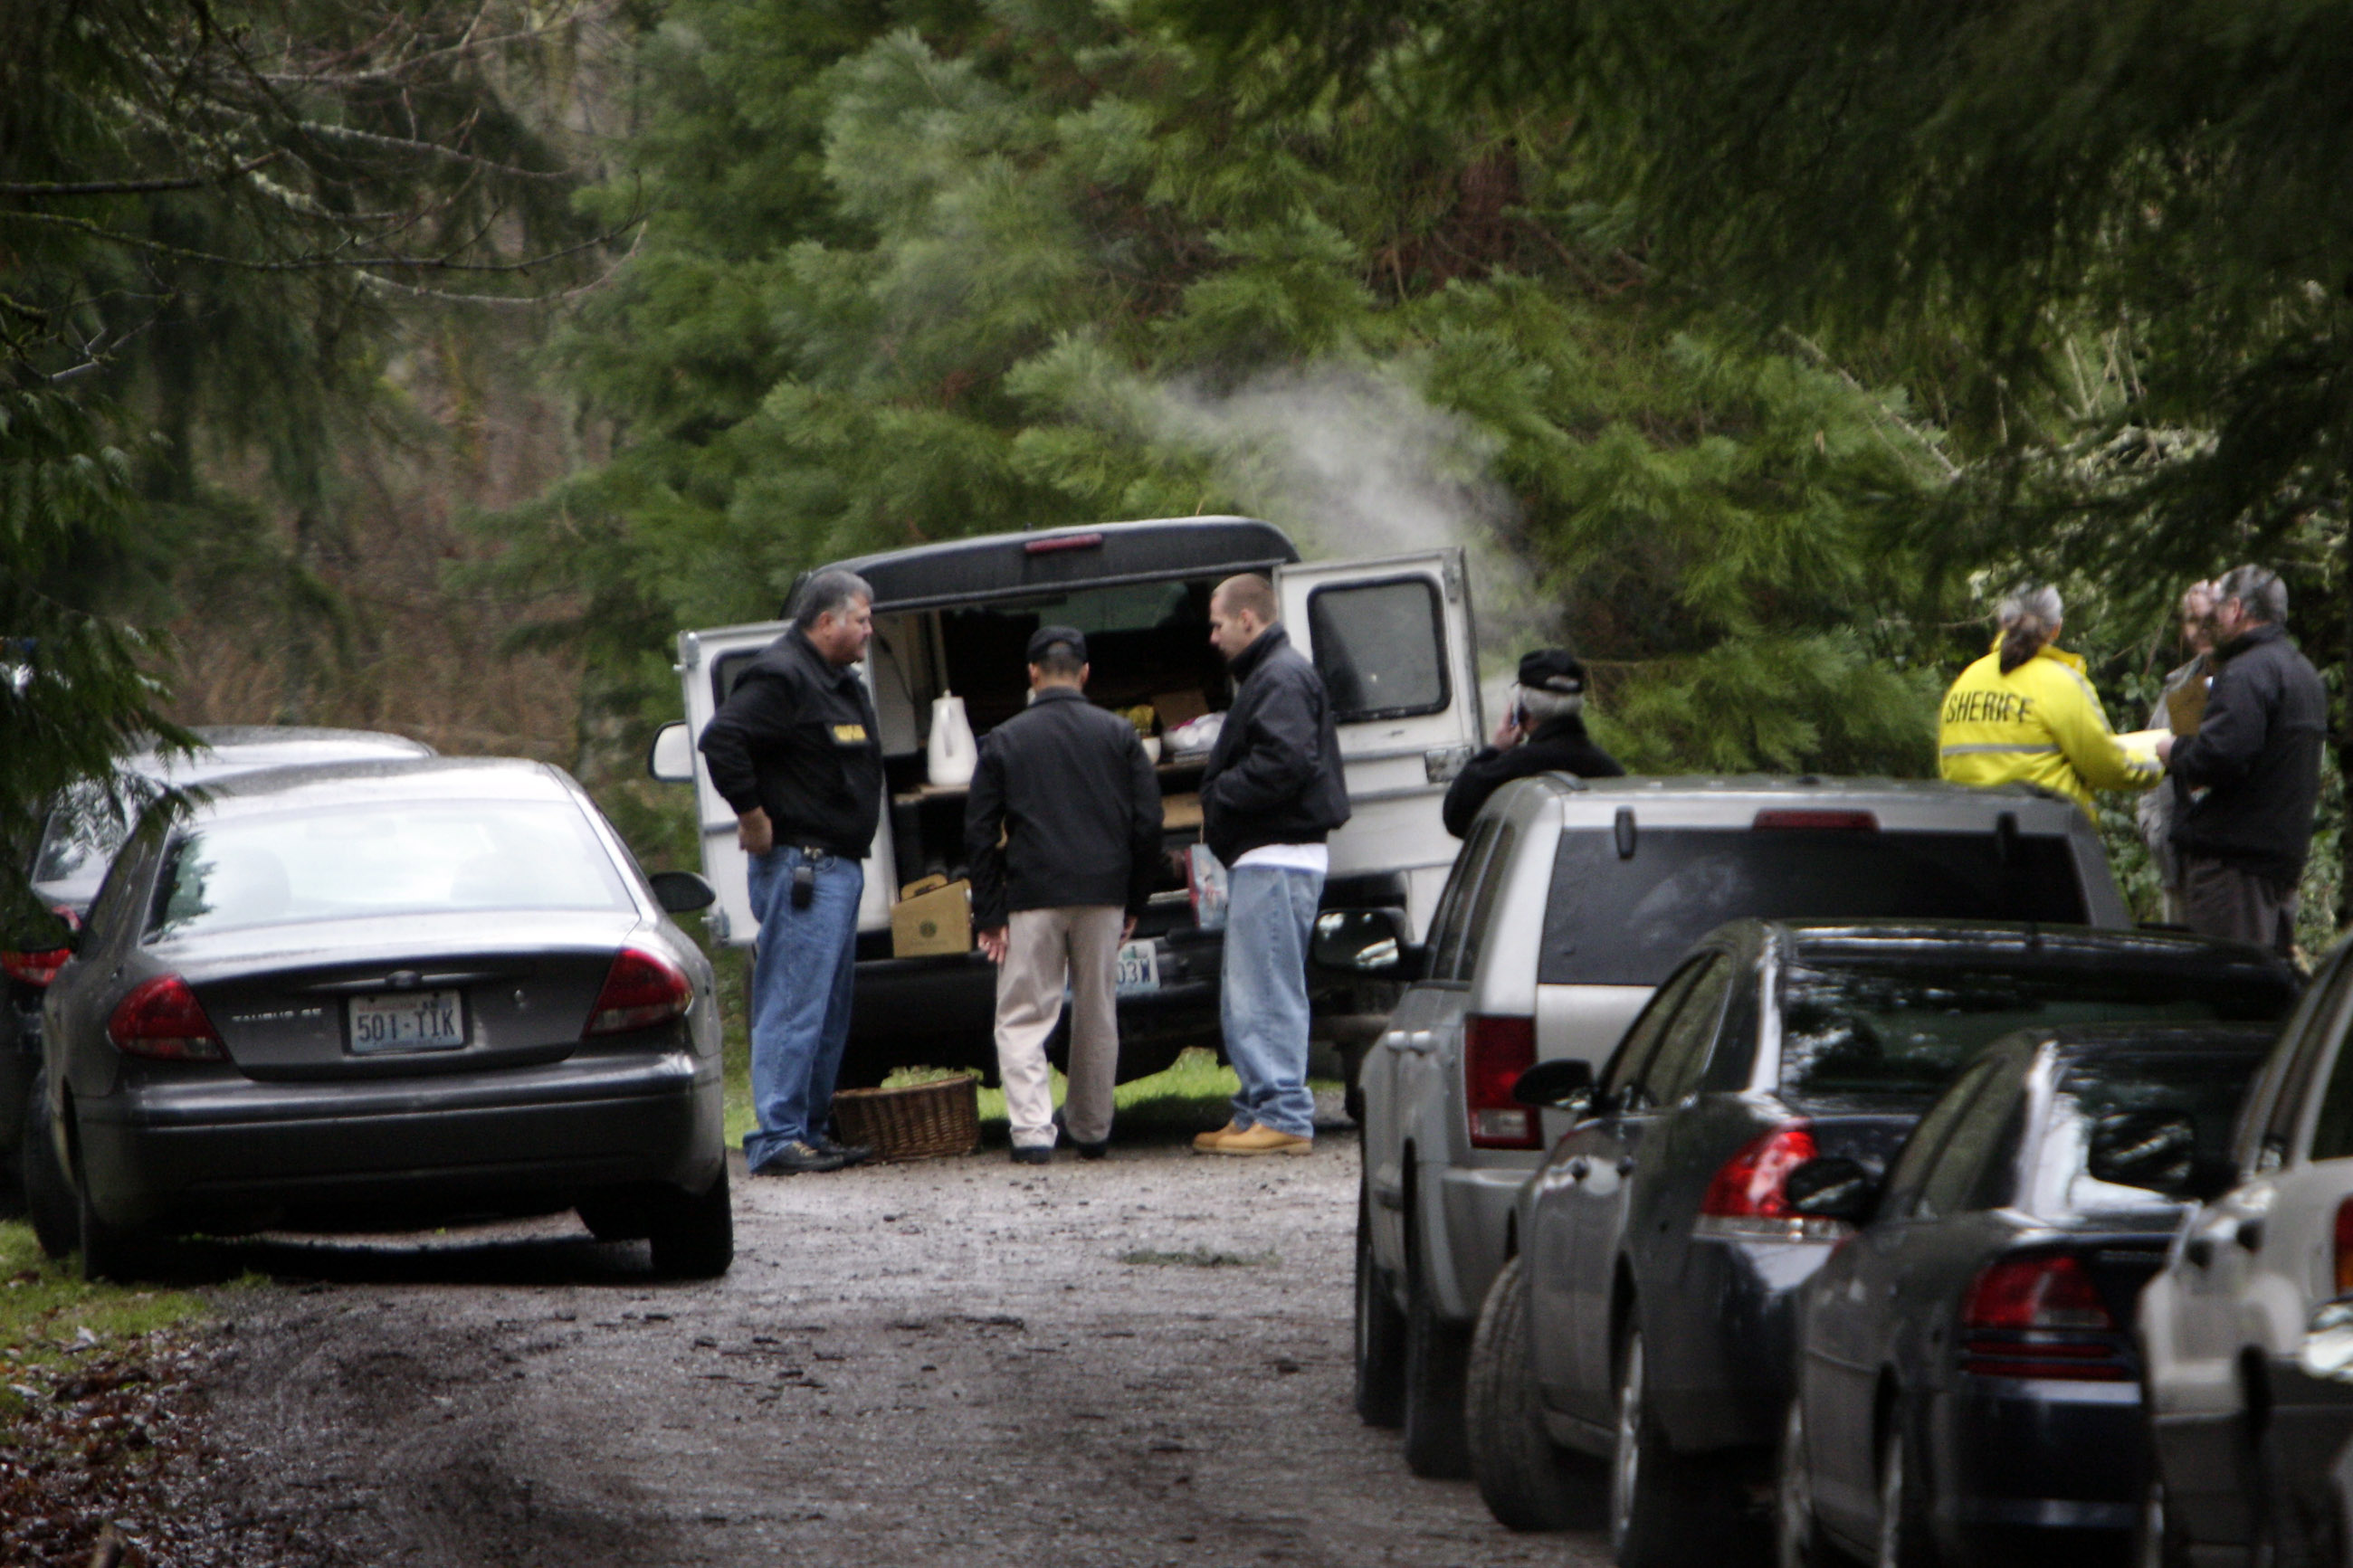 King County Sheriff detectives set up a command post near where the bodies of six people were found shot to death near Seattle, Washington on Wednesda...